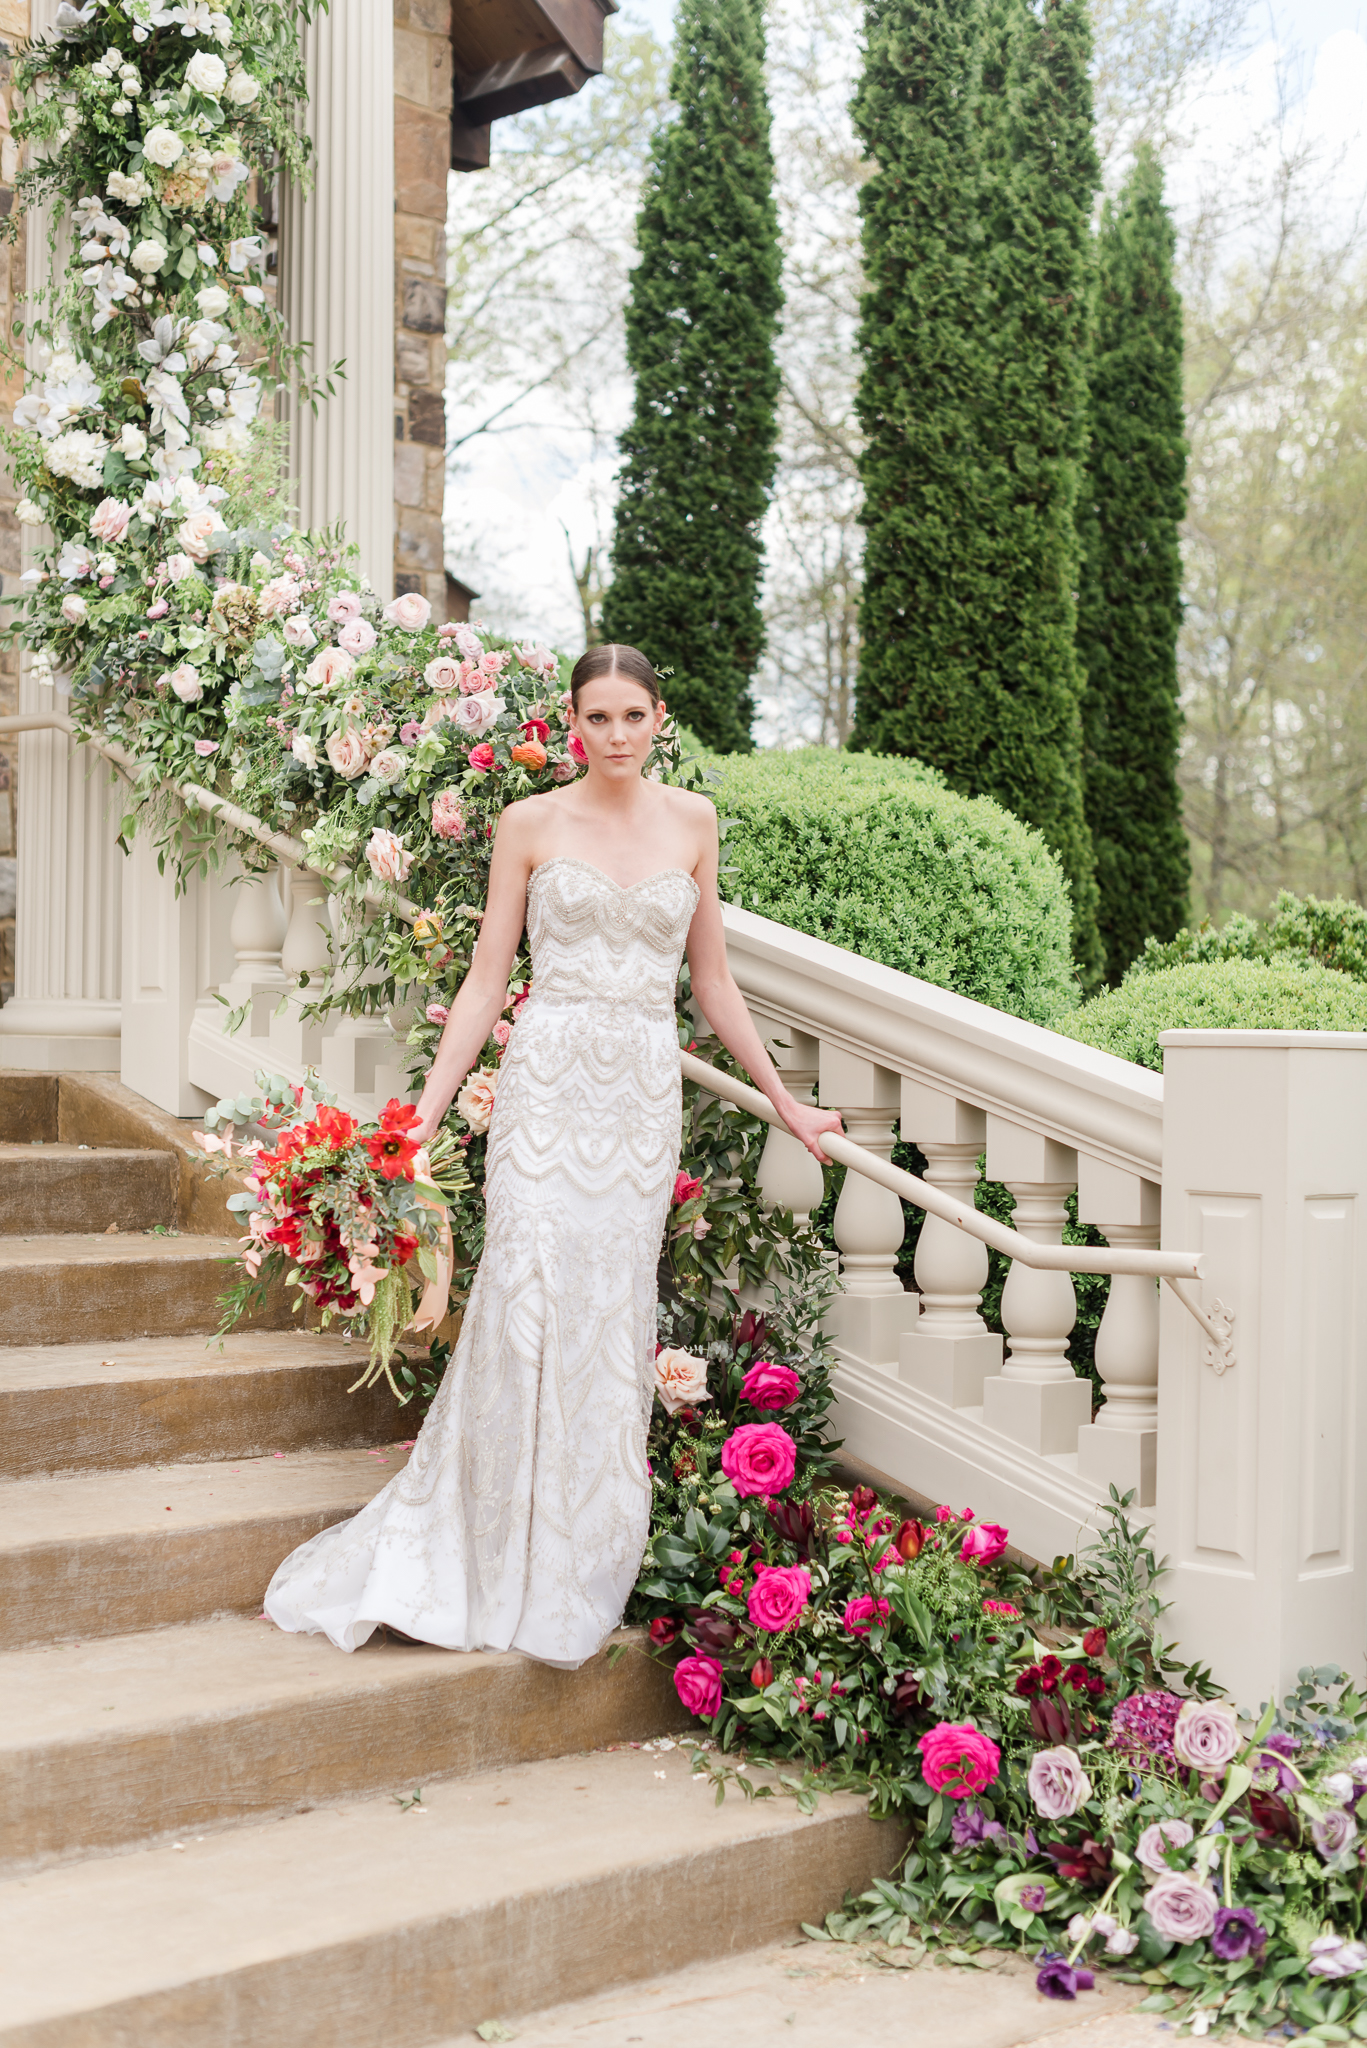 Wedding Day Bridal Portraits with flowers-20.jpg